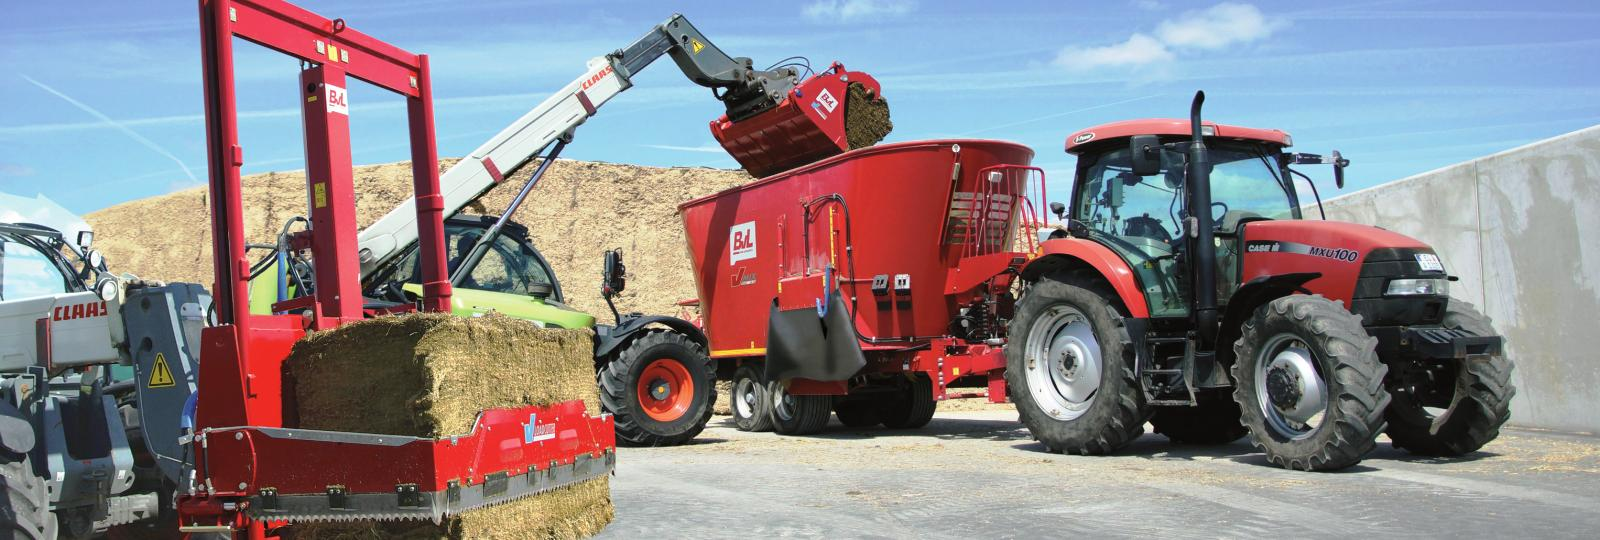 Enhance feed with mixer wagons, beddings implements or shear grabs from BvL.